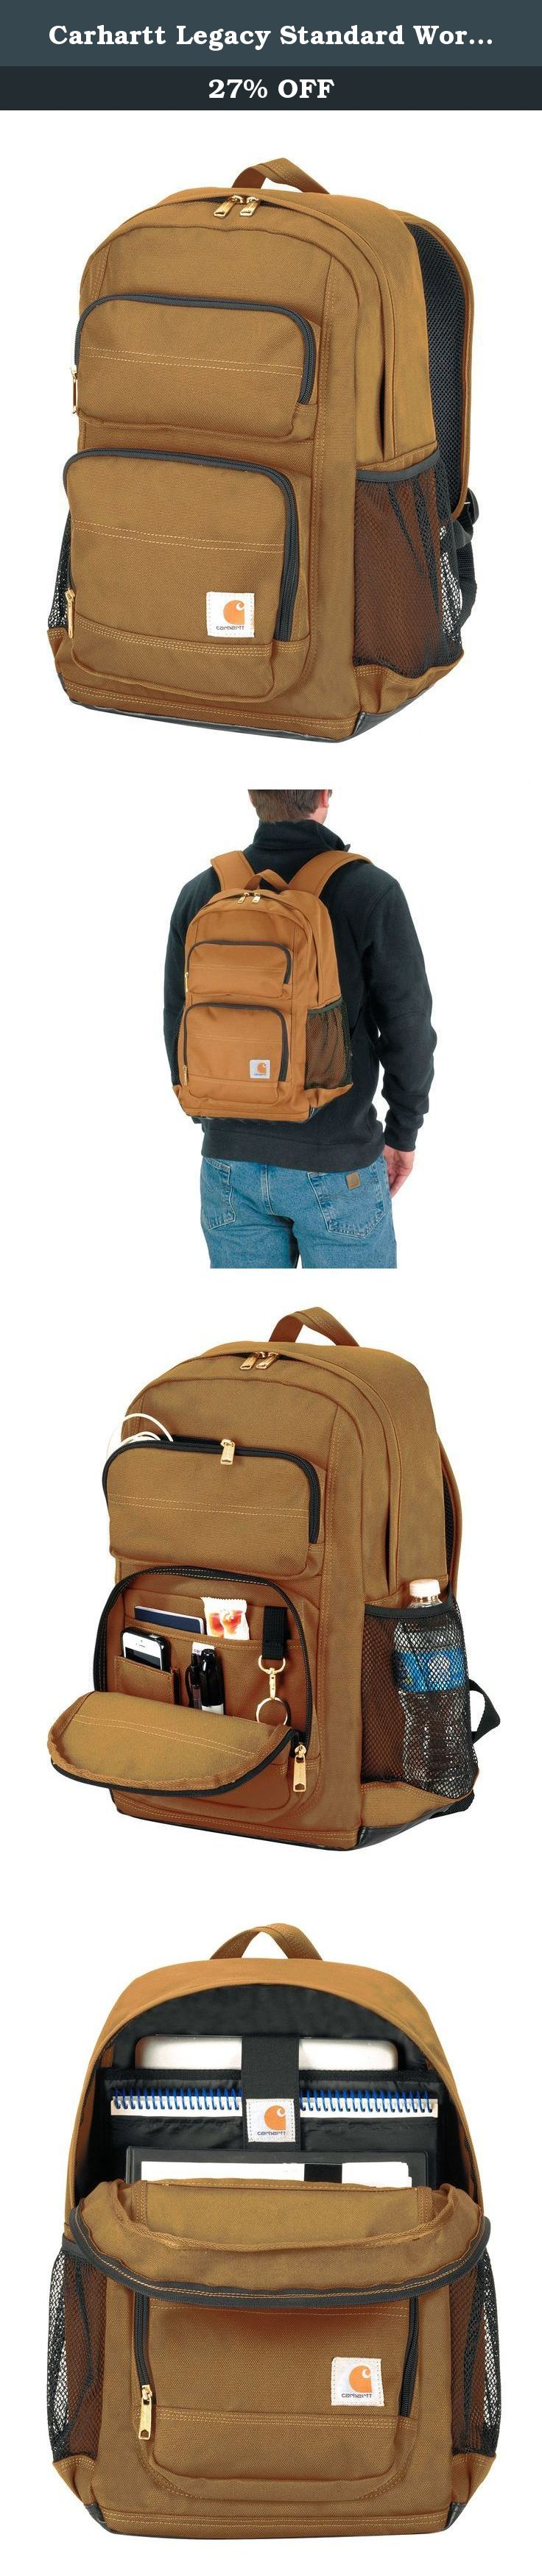 d22c2dd9a Carhartt Legacy Standard Work Backpack with Padded Laptop Sleeve and Tablet  Storage, Carhartt Brown.